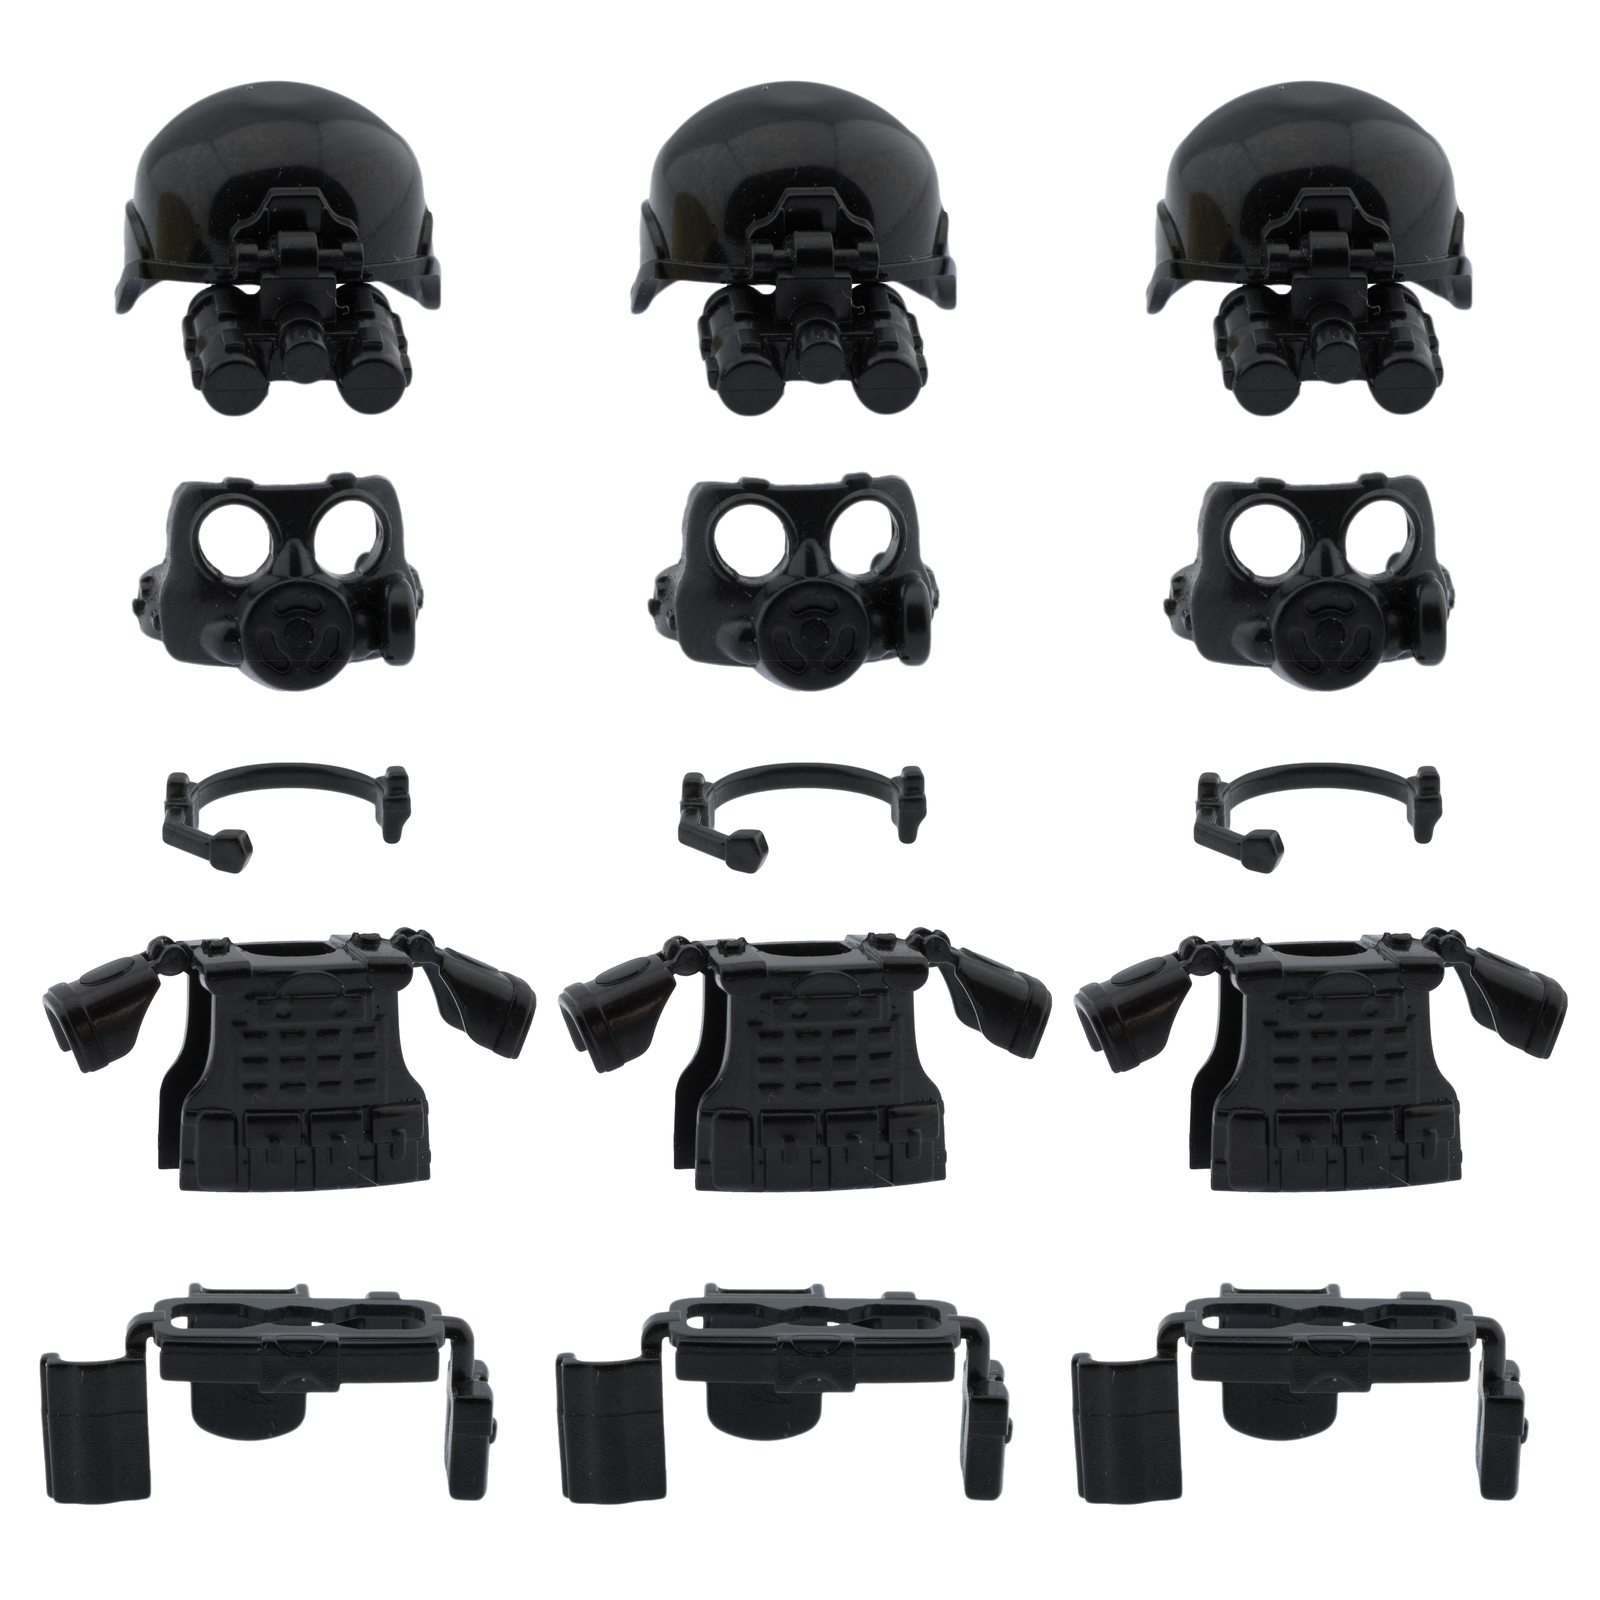 Custom swat minifigure police army armor compatible for lego set accessories